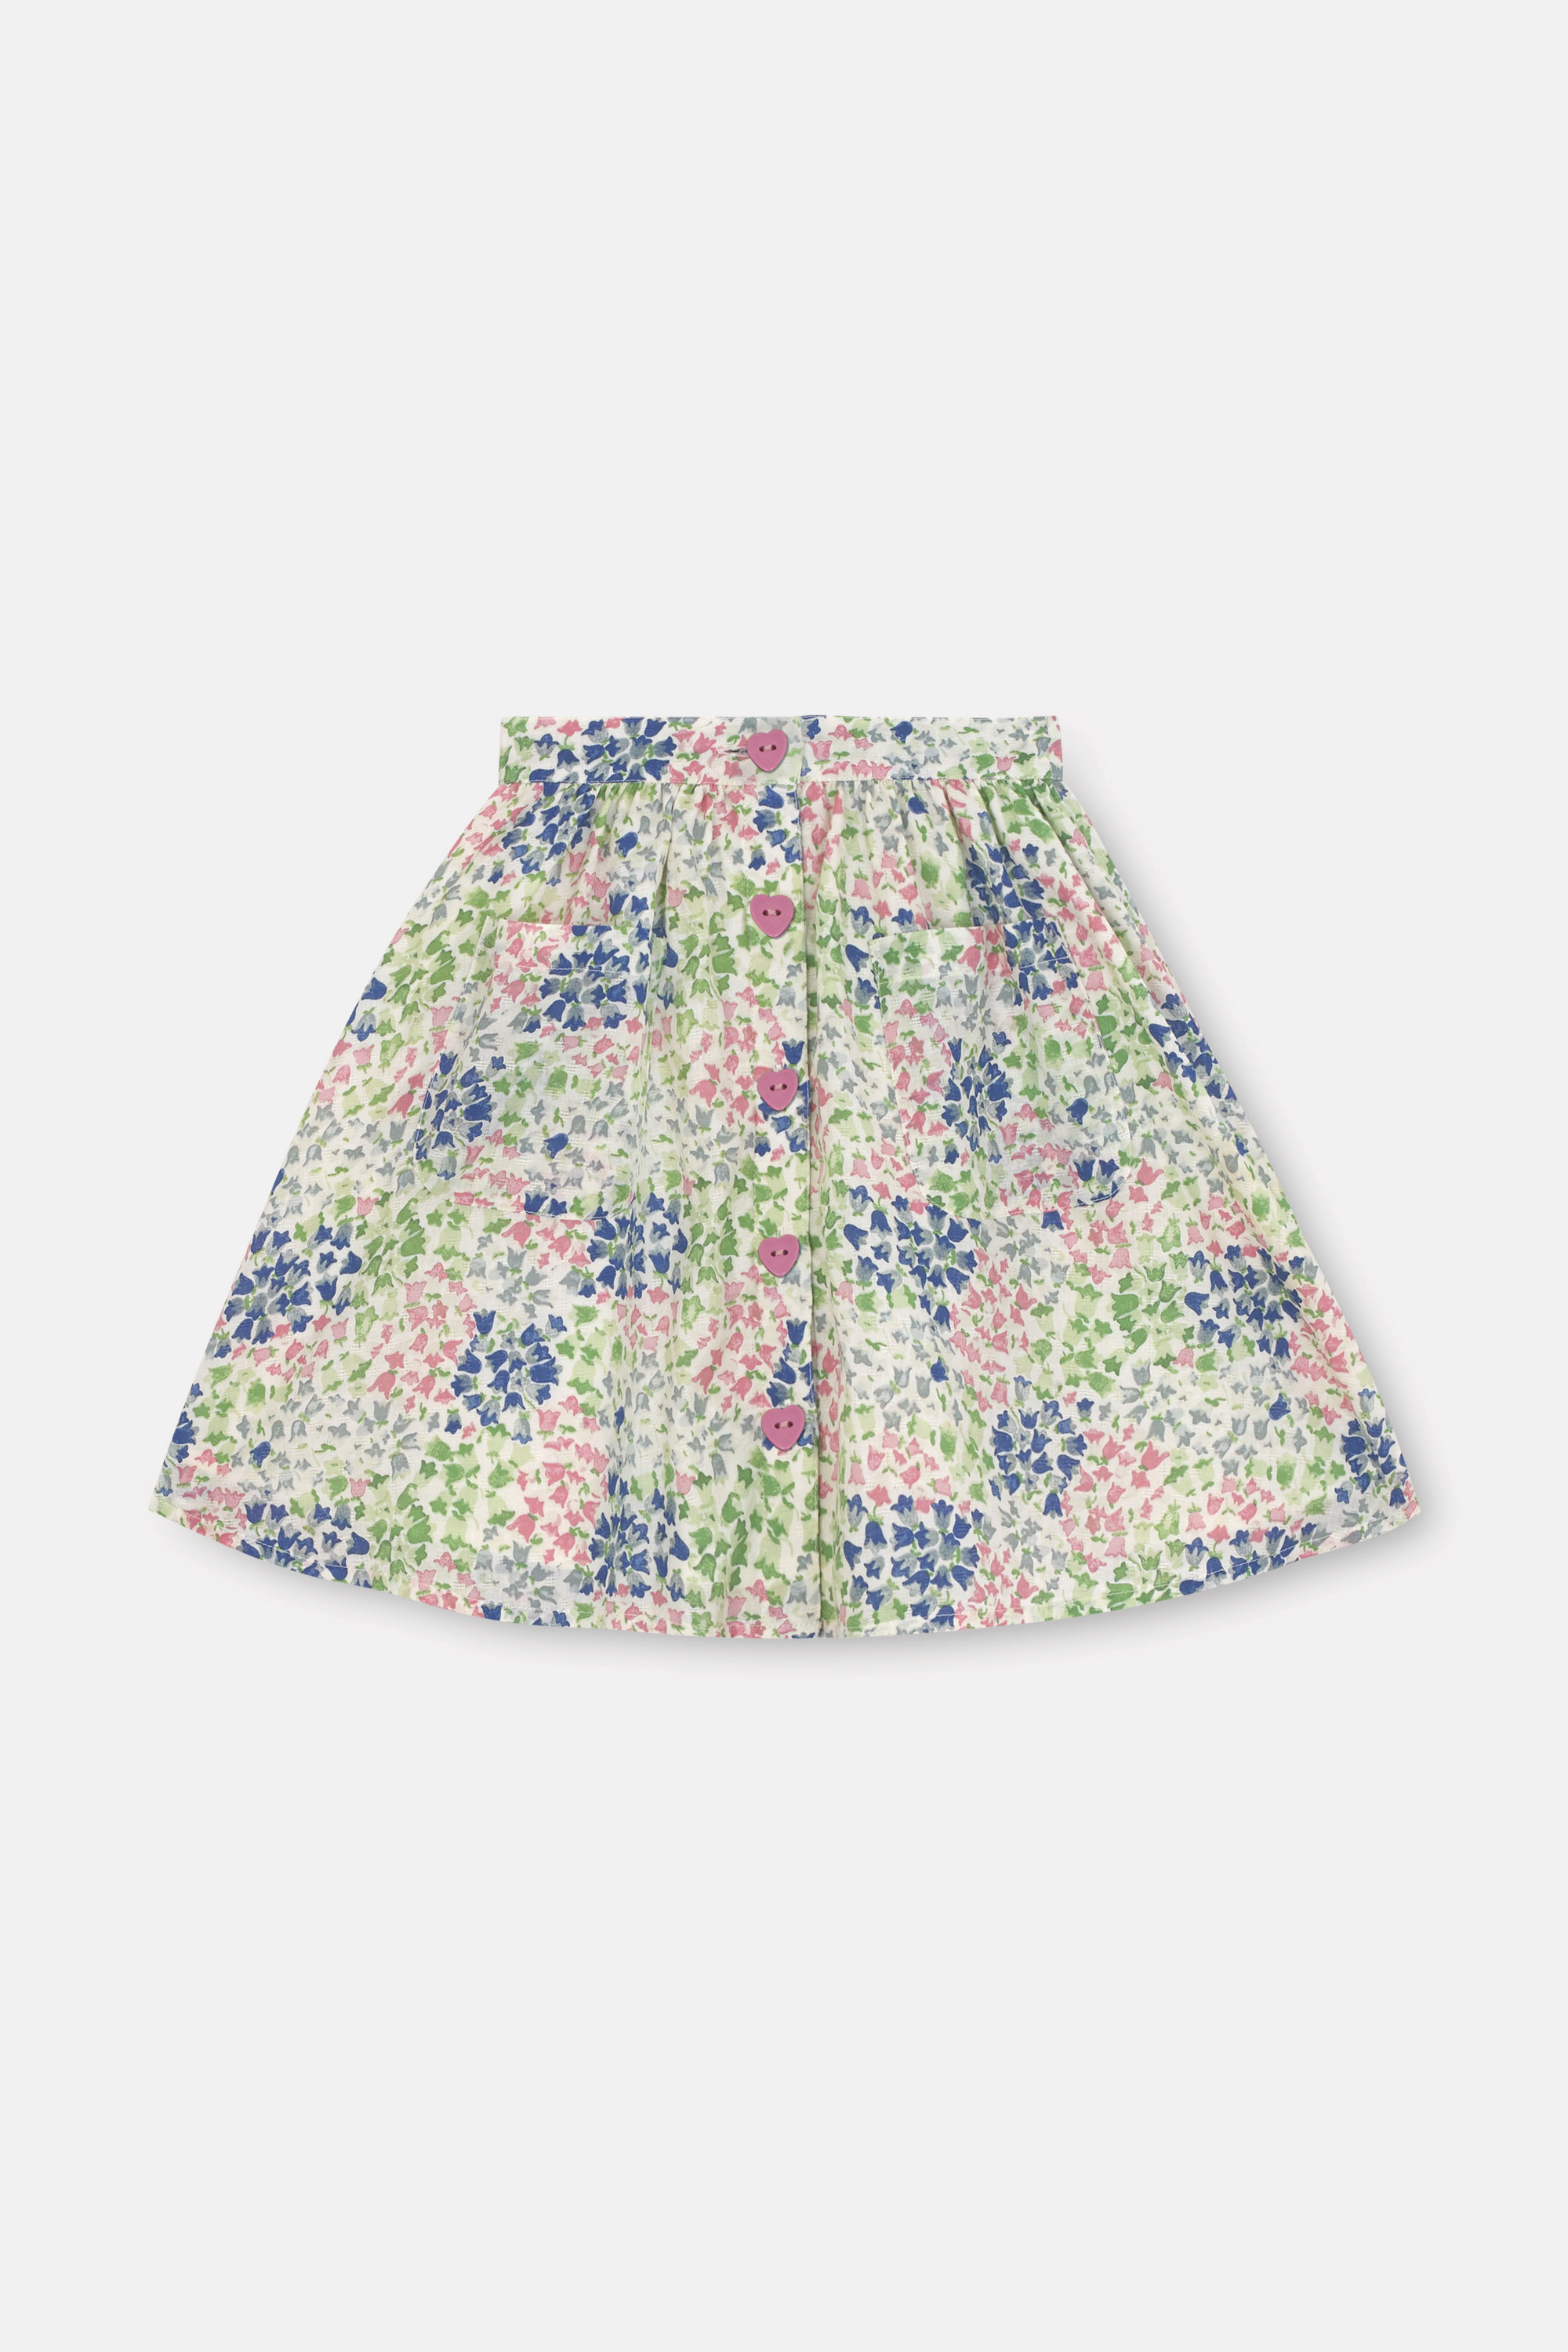 Cath Kidston Tiny Painted Bluebell Jessica Skirt in Warm Cream, 2-3 yr